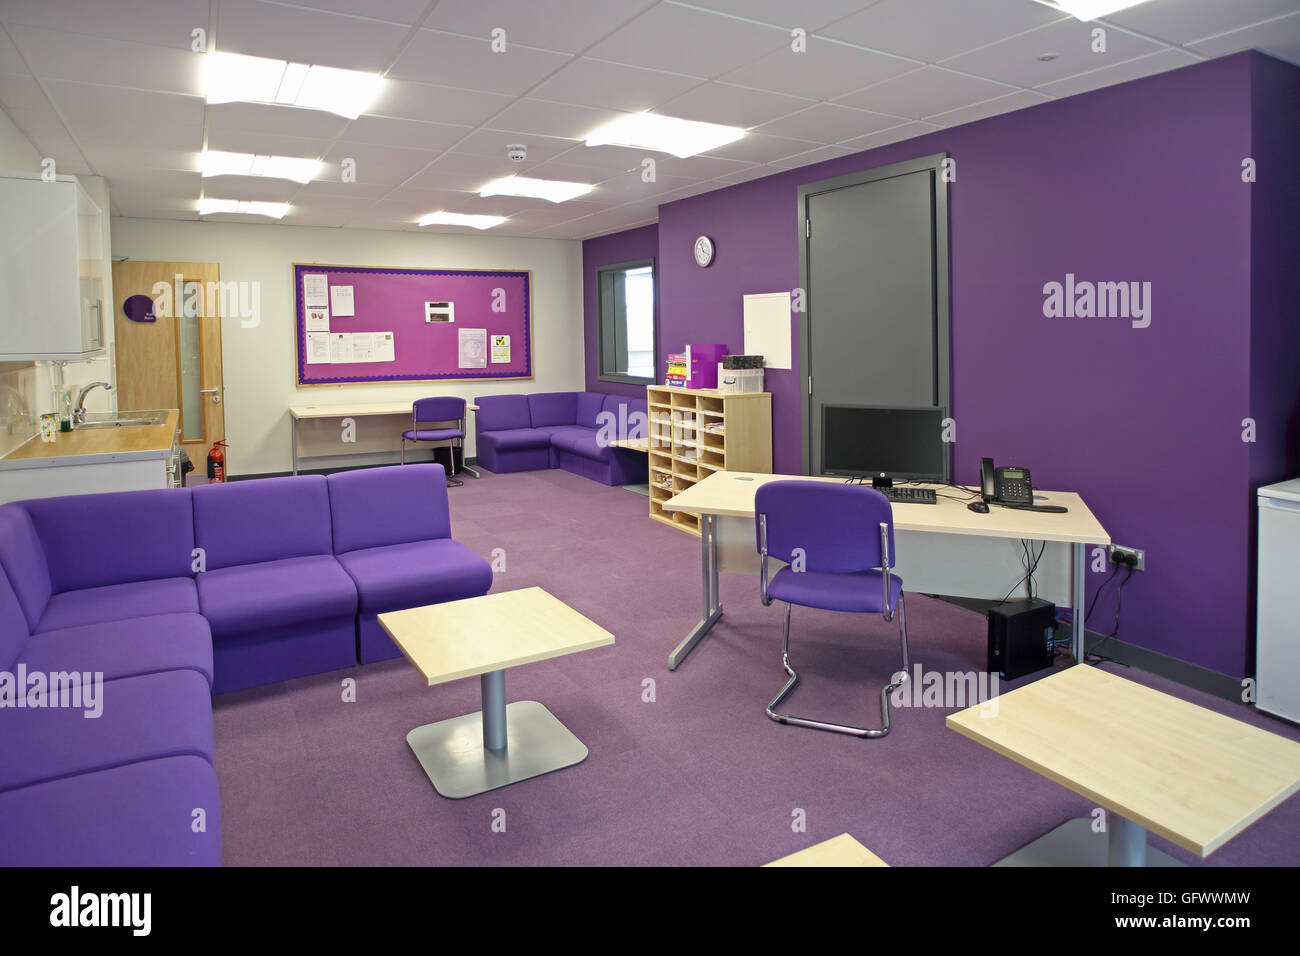 Staff administration and office area in a brand new London primary school. Shows desk and waiting area. Purple colour - Stock Image